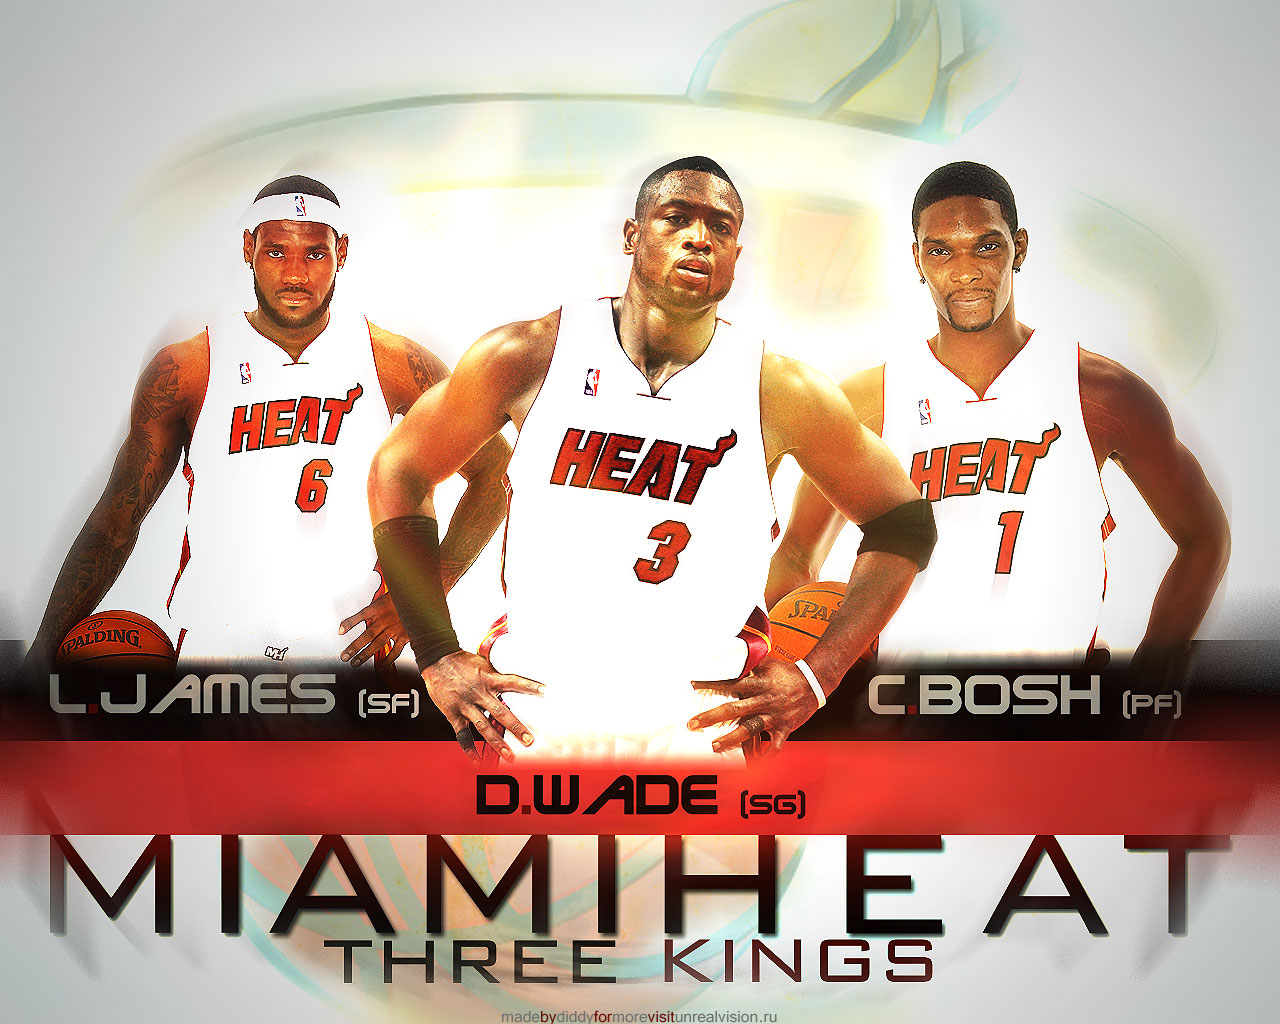 http://4.bp.blogspot.com/_FUqunw1CcGY/TQ5NbafyJJI/AAAAAAAAAes/dJnpNofX4Nw/s1600/Miami-Heat-3-Kings-Wallpaper.jpg